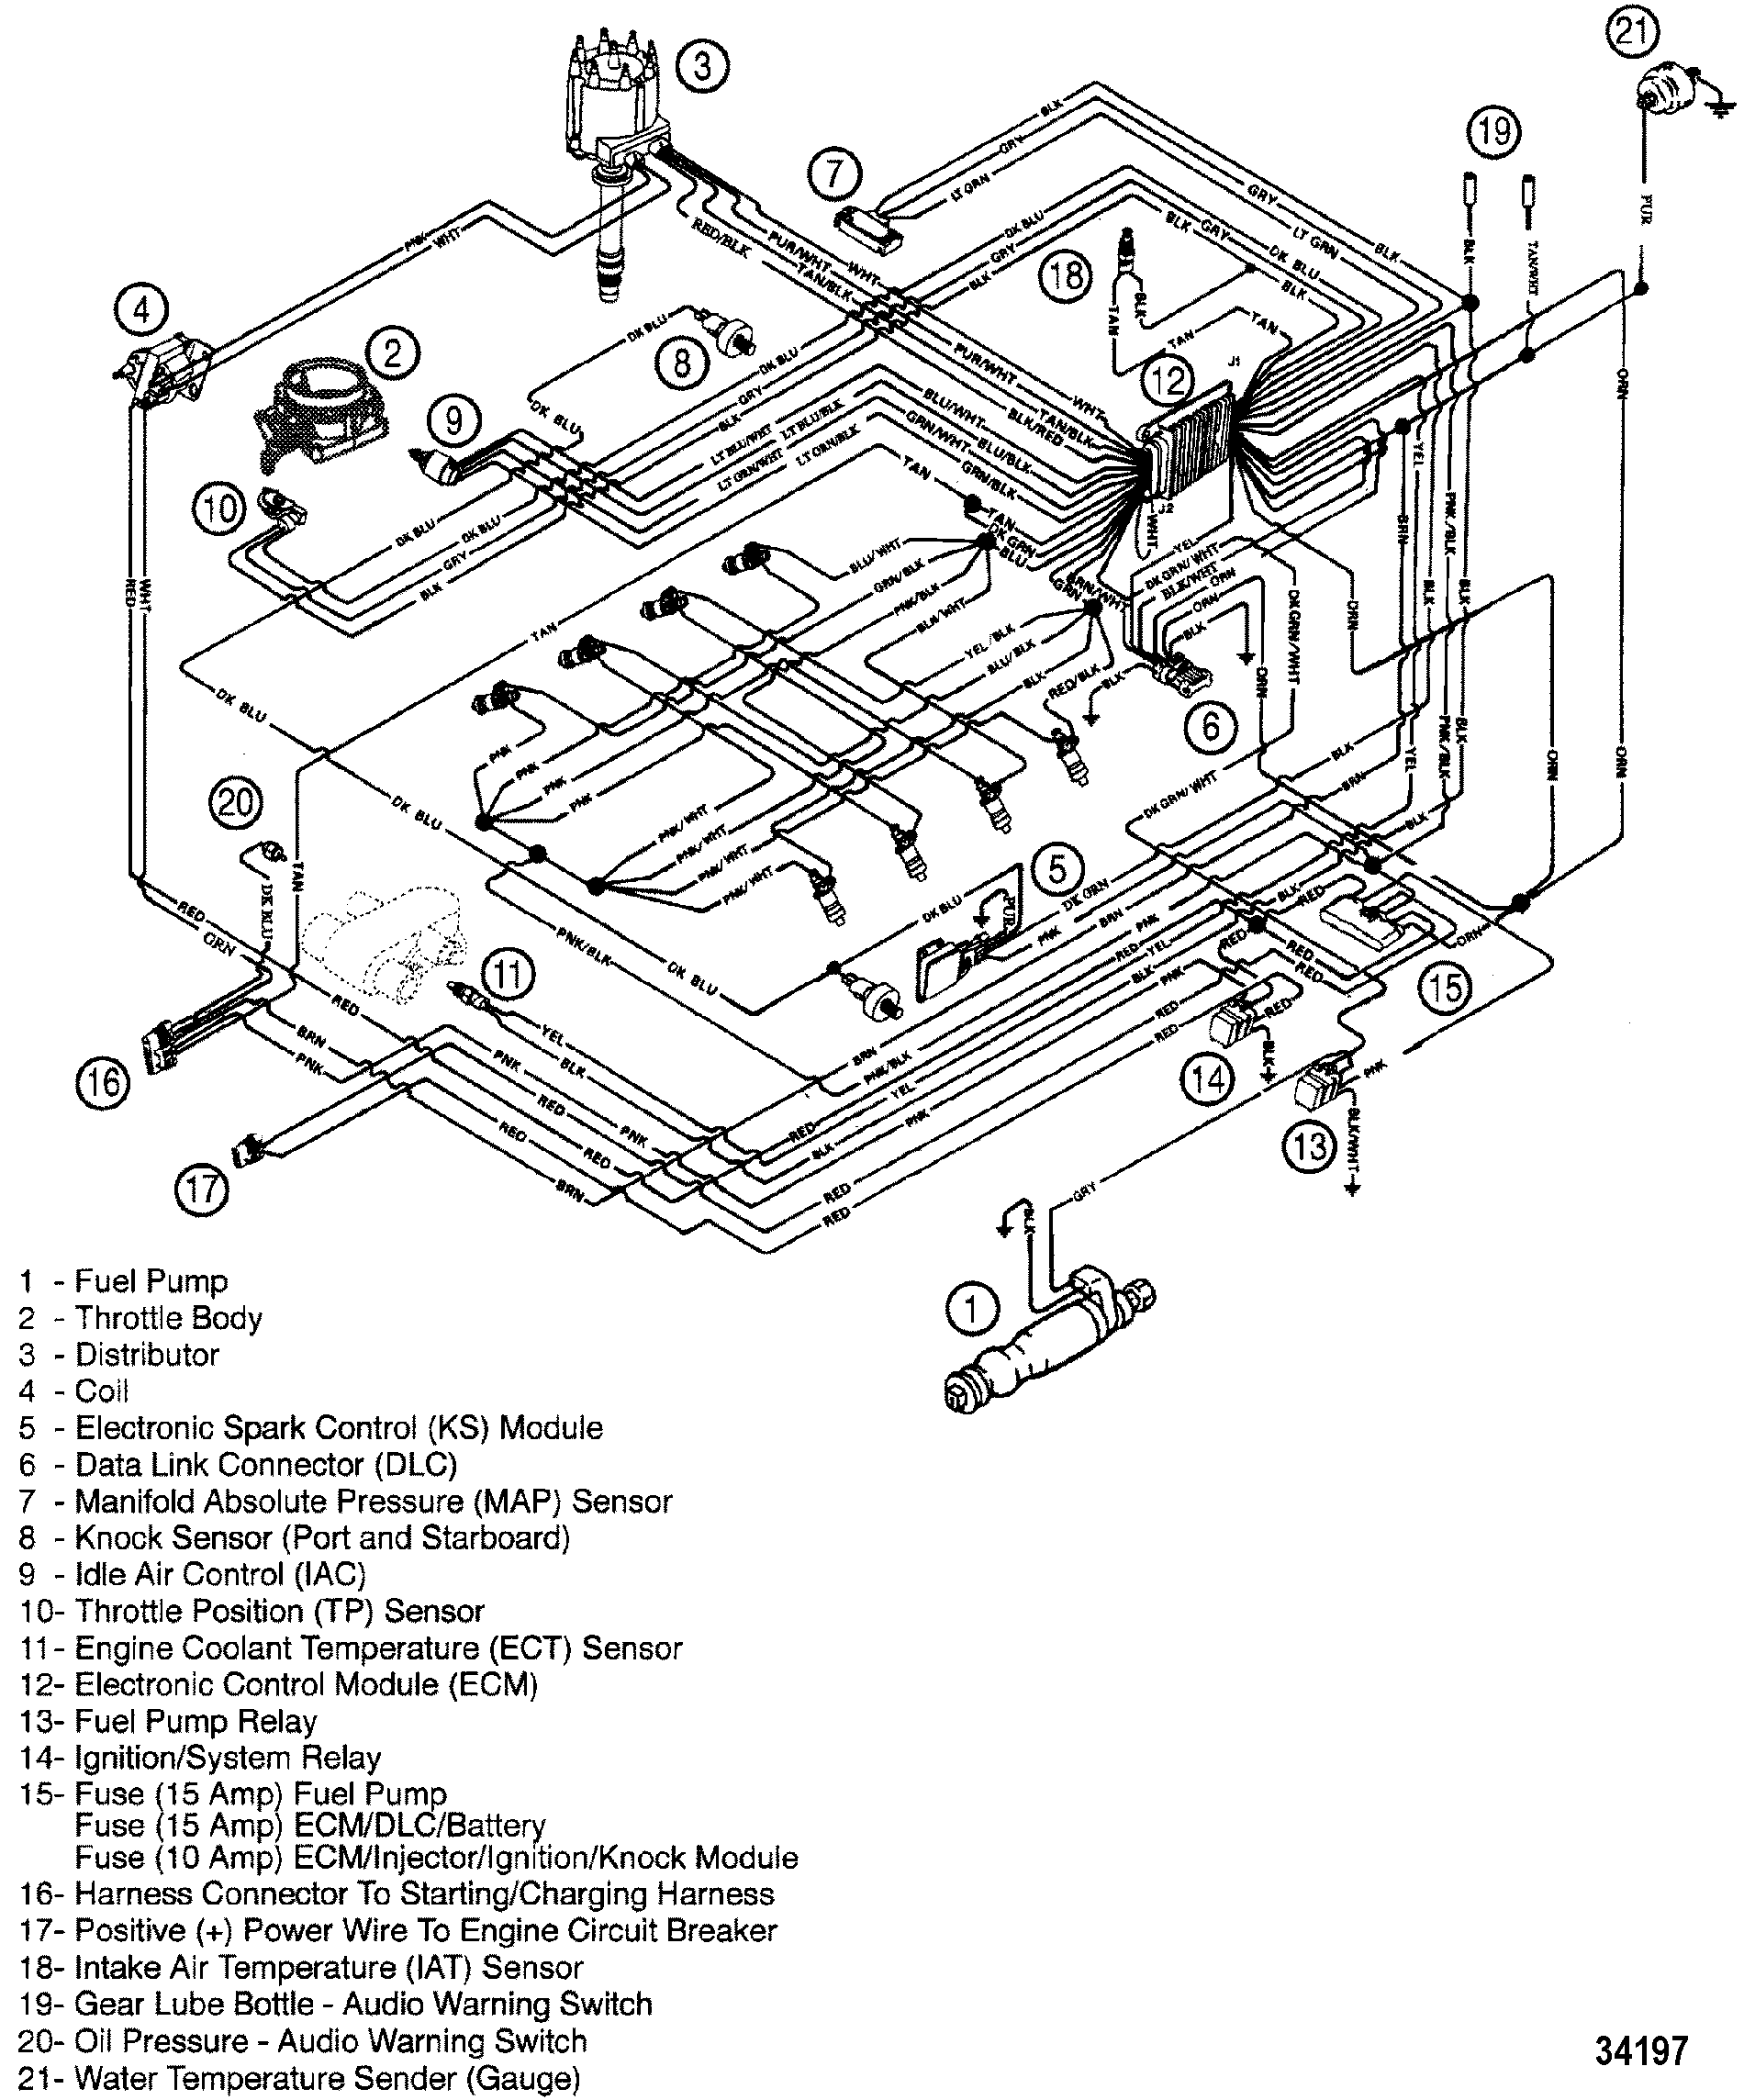 34197 wiring harness efi for mercruiser 7 4l mpi bravo l29 gen vi mercruiser wiring harness diagram at bayanpartner.co